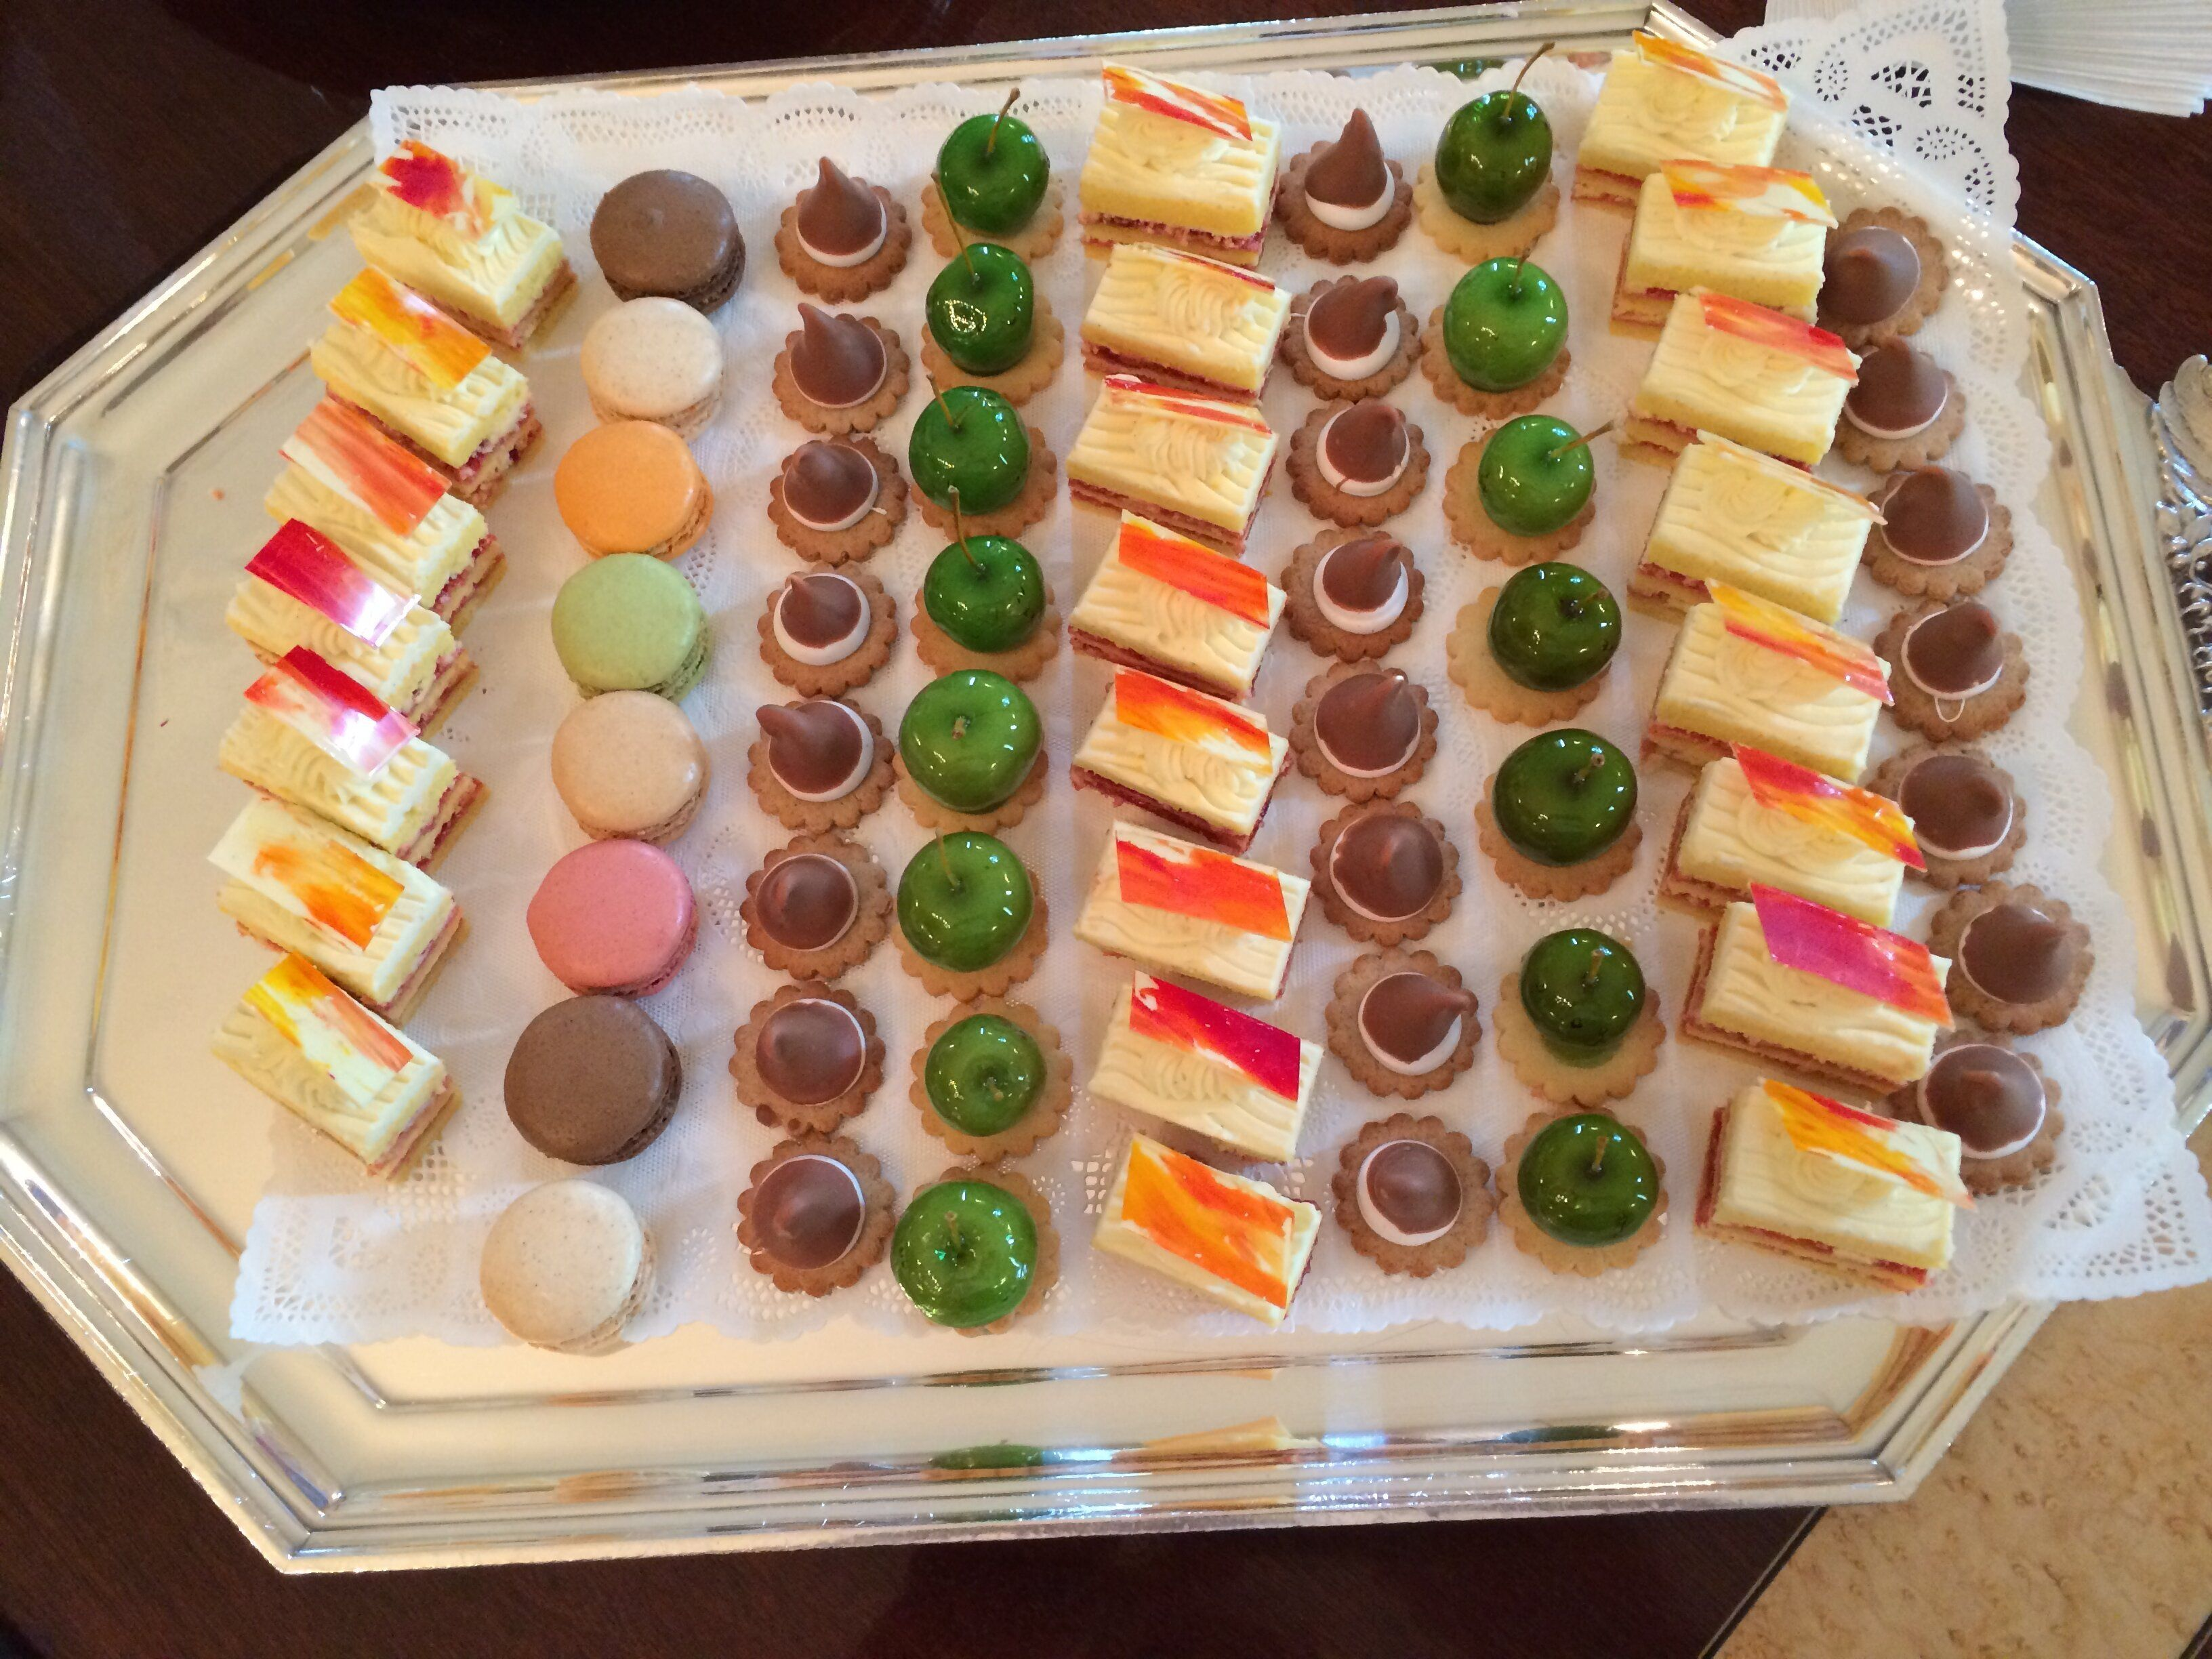 A selection of desserts that Yosses made for the state dinner in honor of then-President Francois Hollande in February 2014.